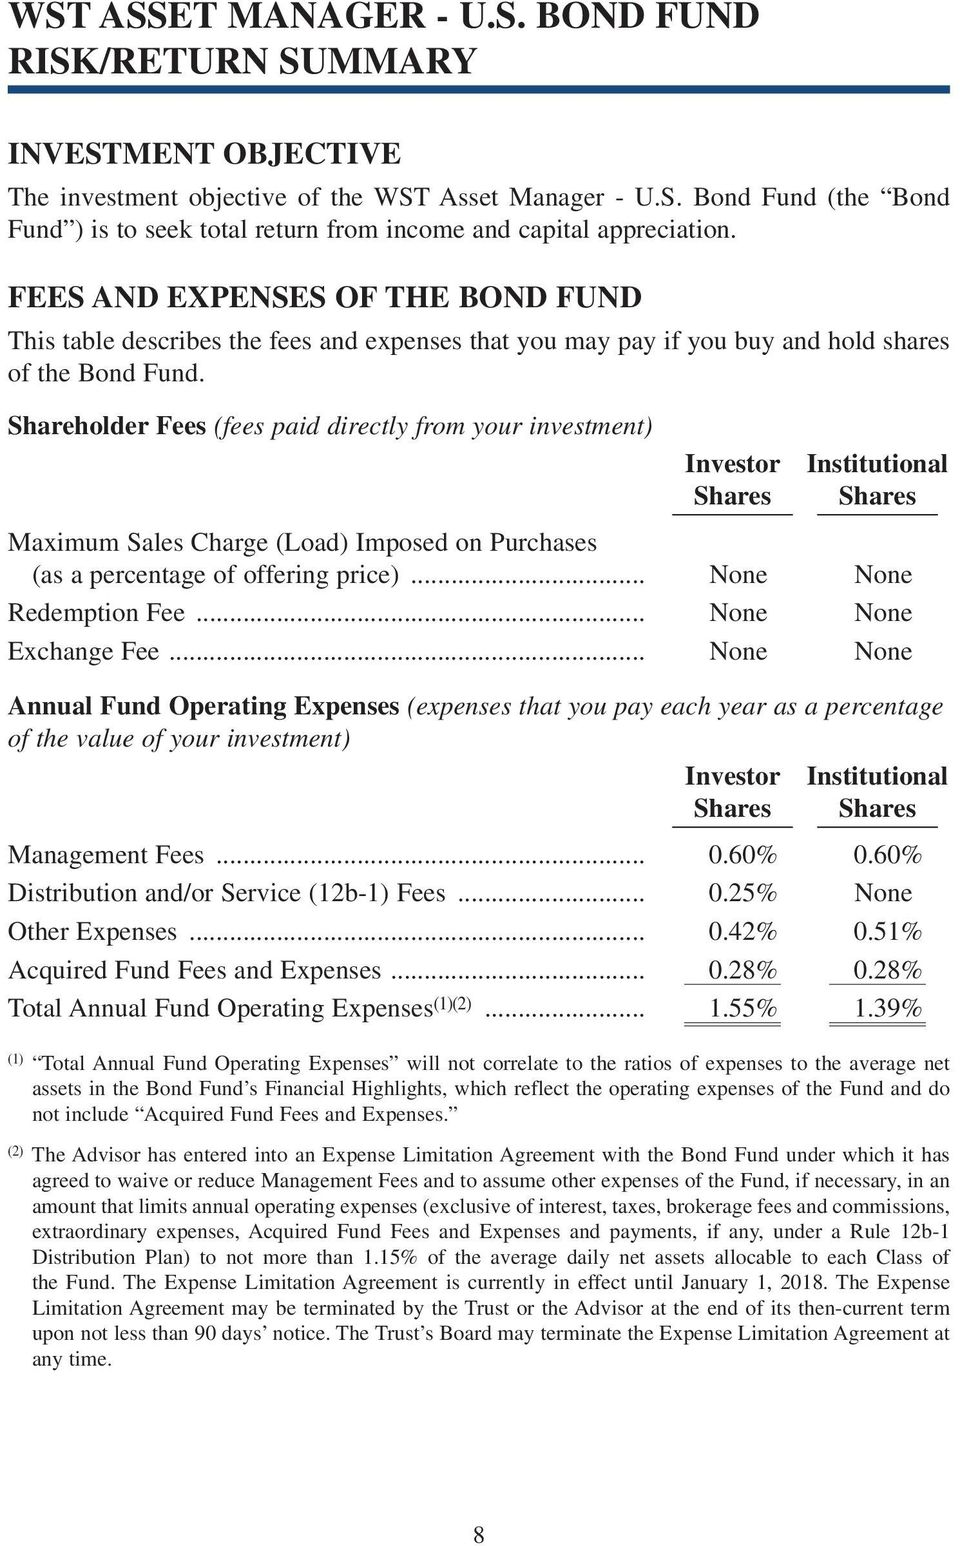 Shareholder Fees (fees paid directly from your investment) Investor Shares Institutional Shares Maximum Sales Charge (Load) Imposed on Purchases (as a percentage of offering price).